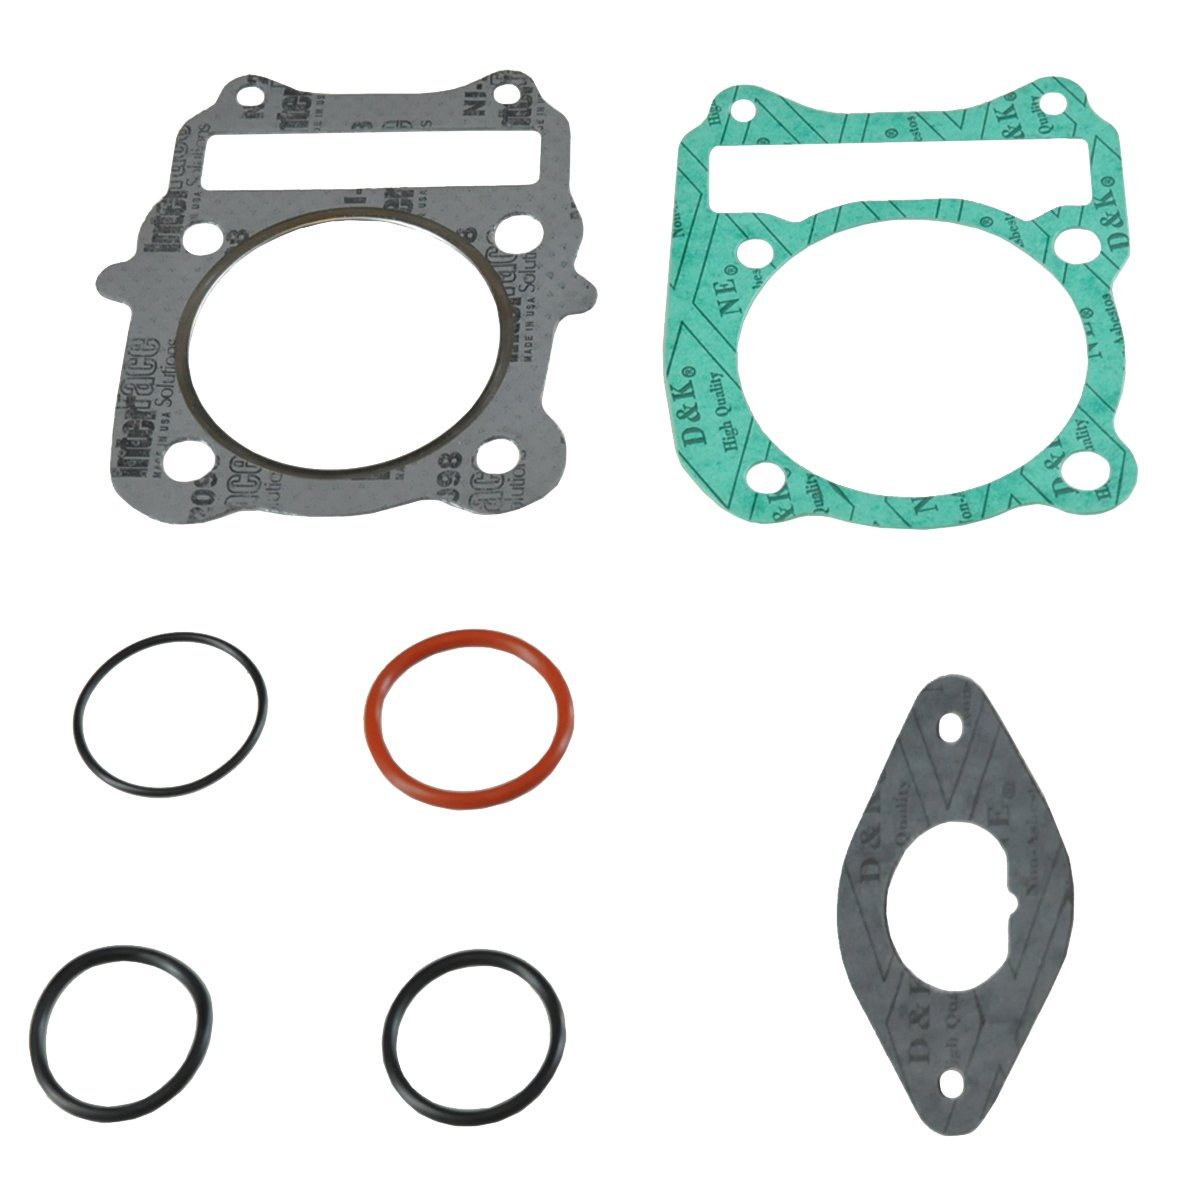 Arctic Cat 300 4X4 1998-2003 Tusk Top End Gasket Kit Fits